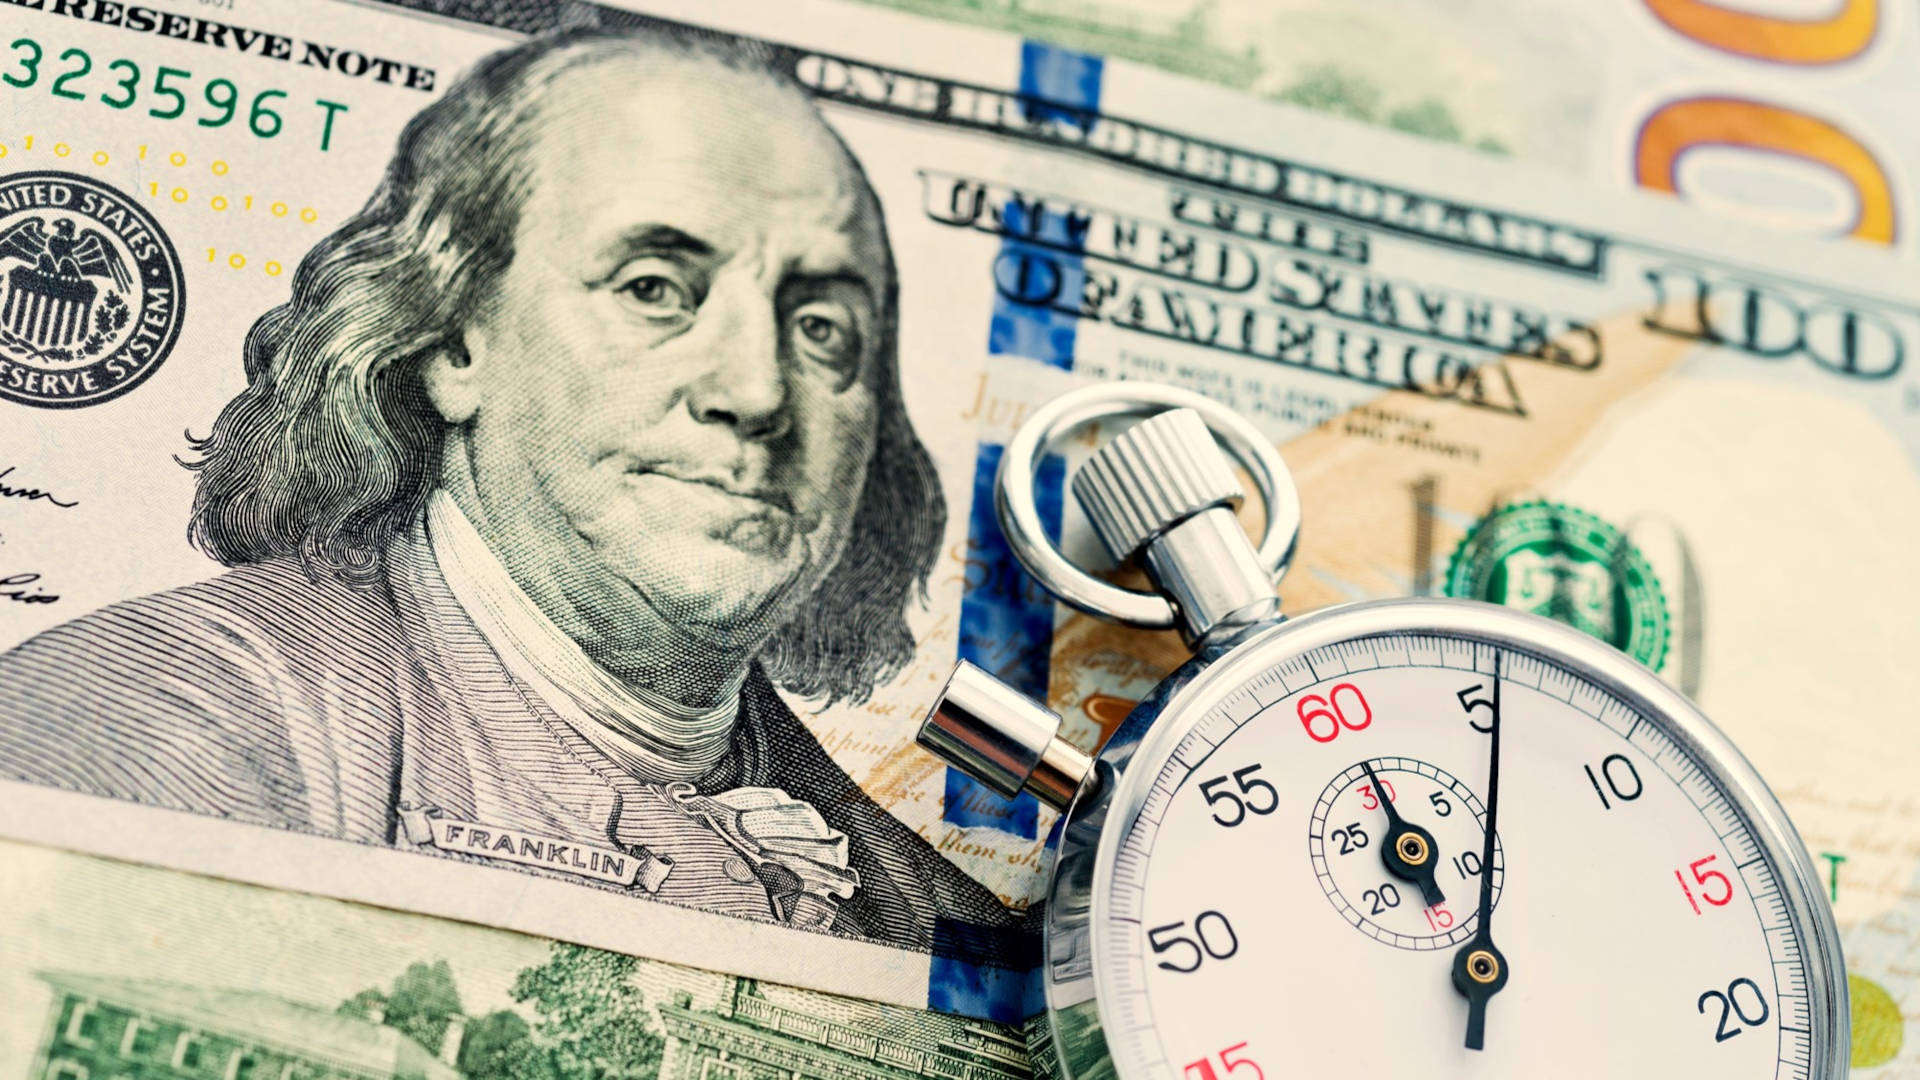 ben-franklin-time-is-money-private-5g-urllc-blog-banner